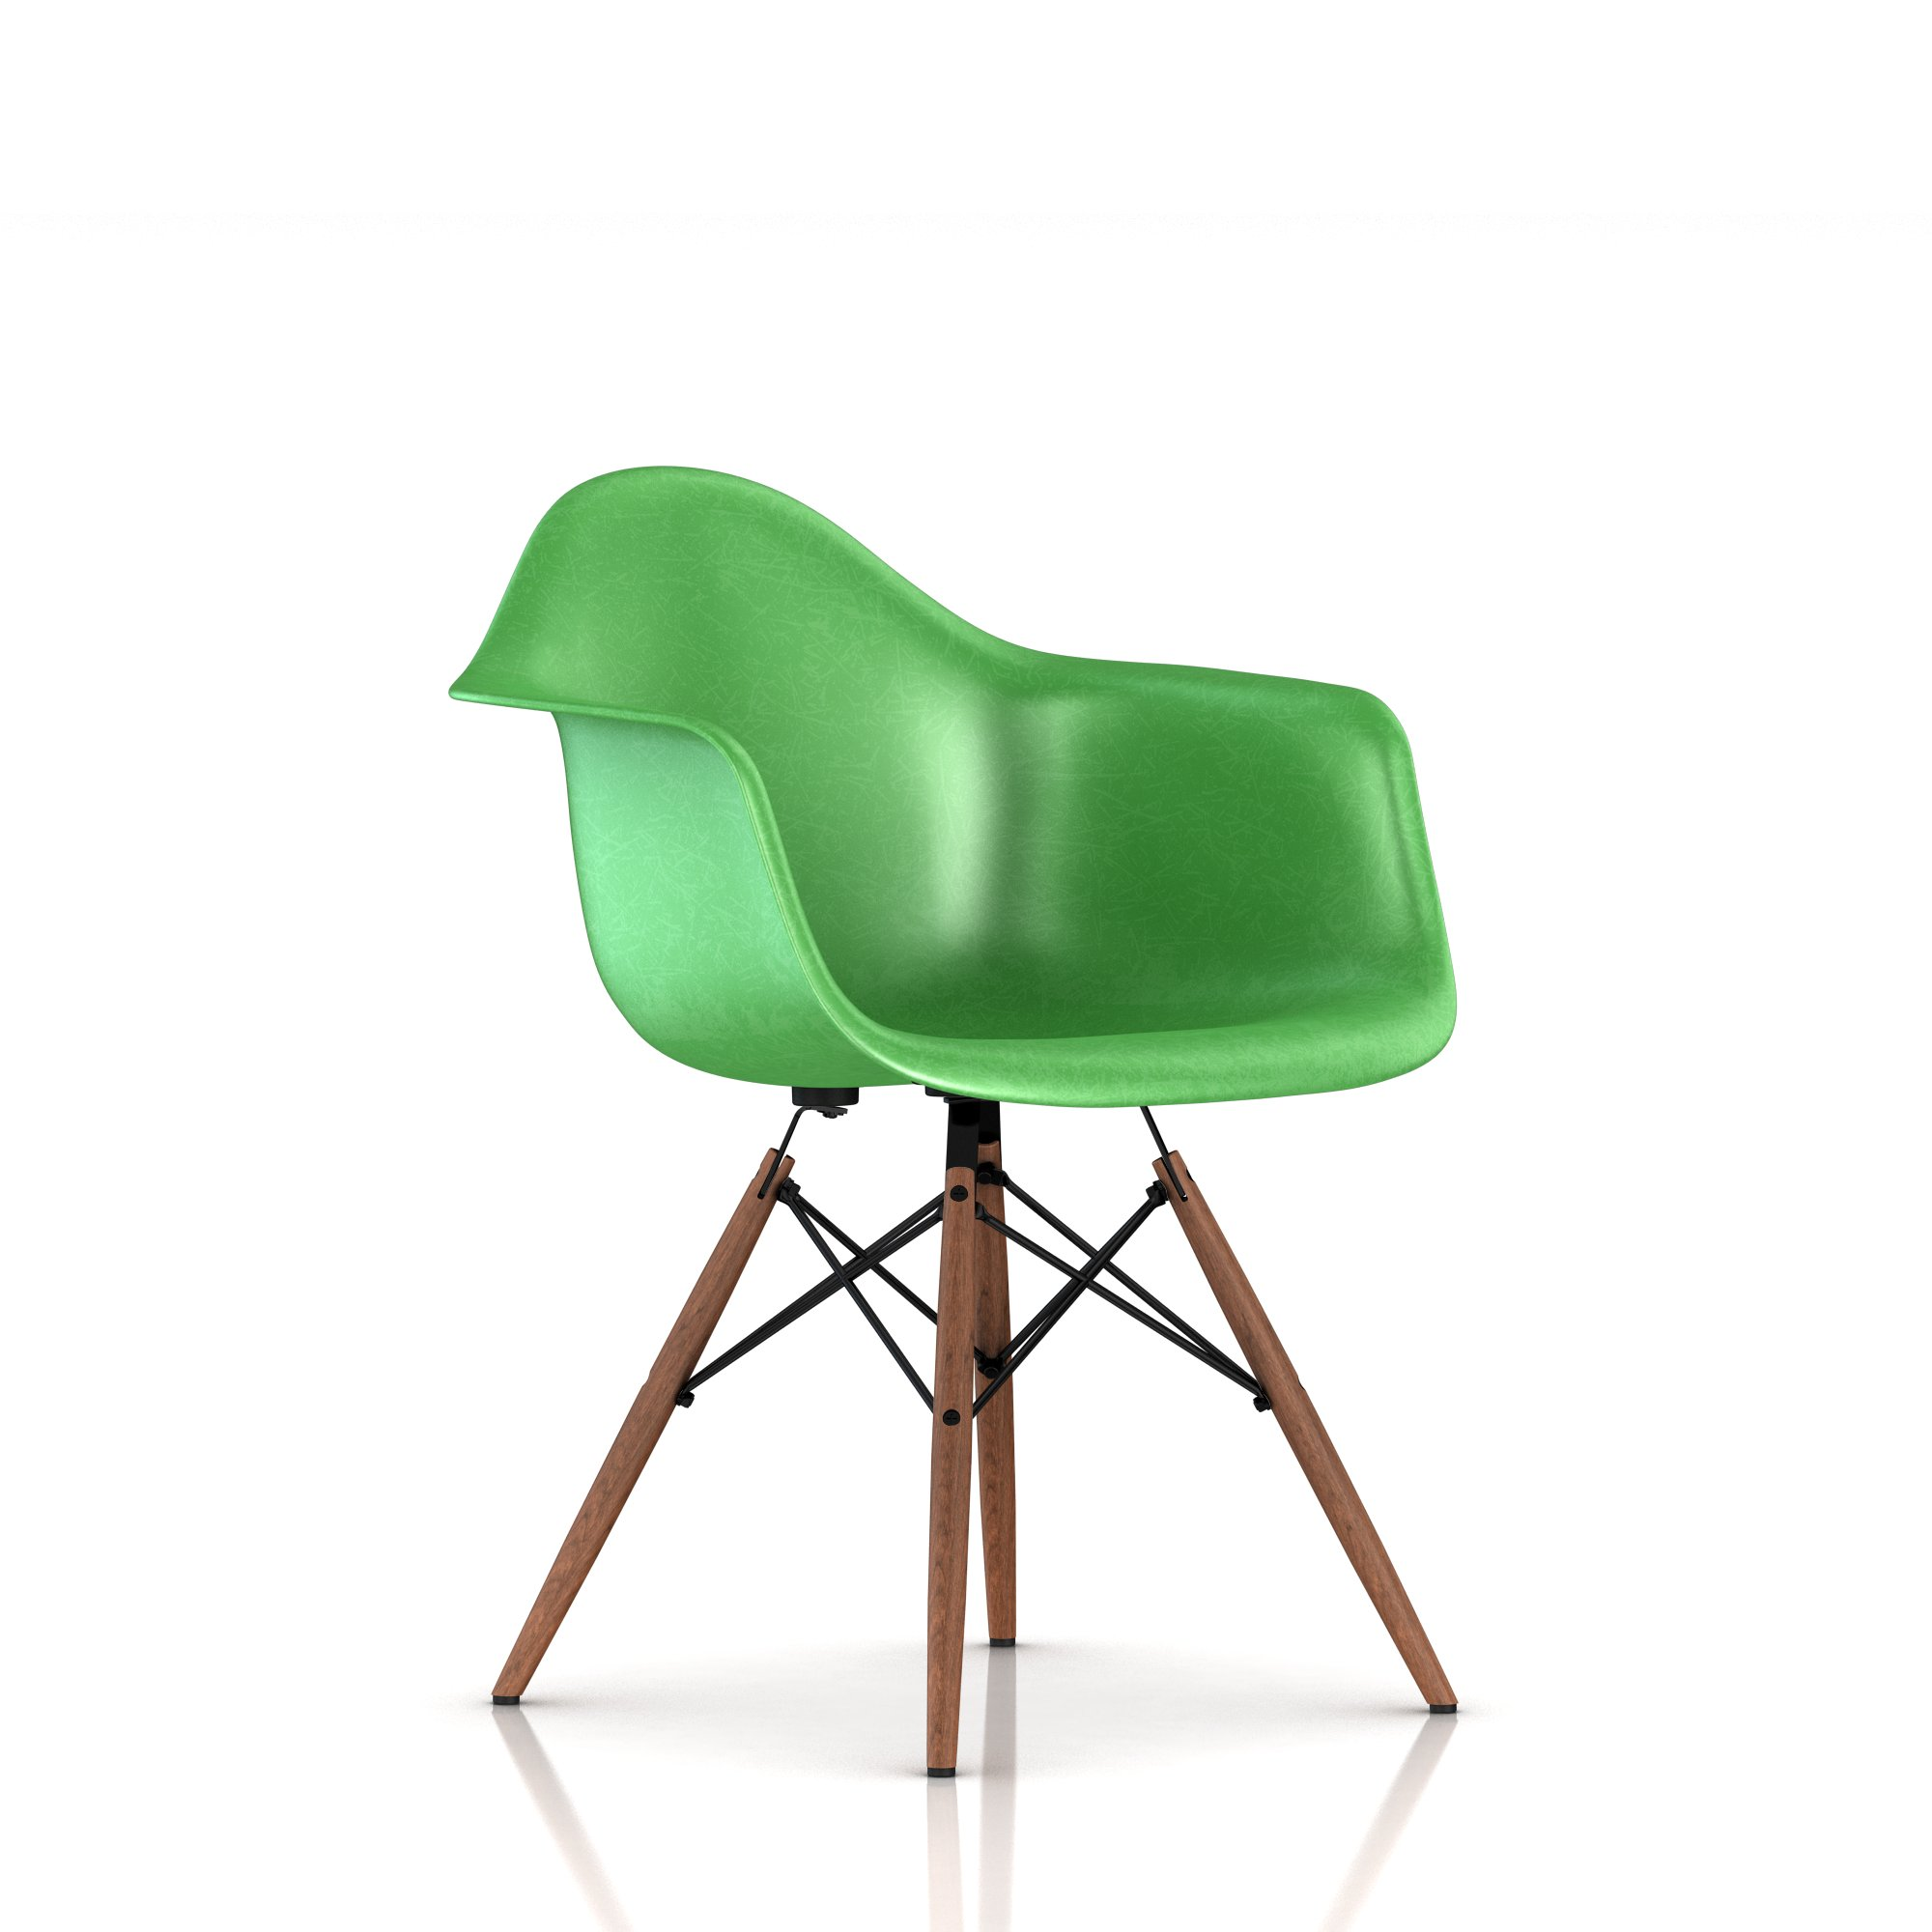 Green + Walnut leg